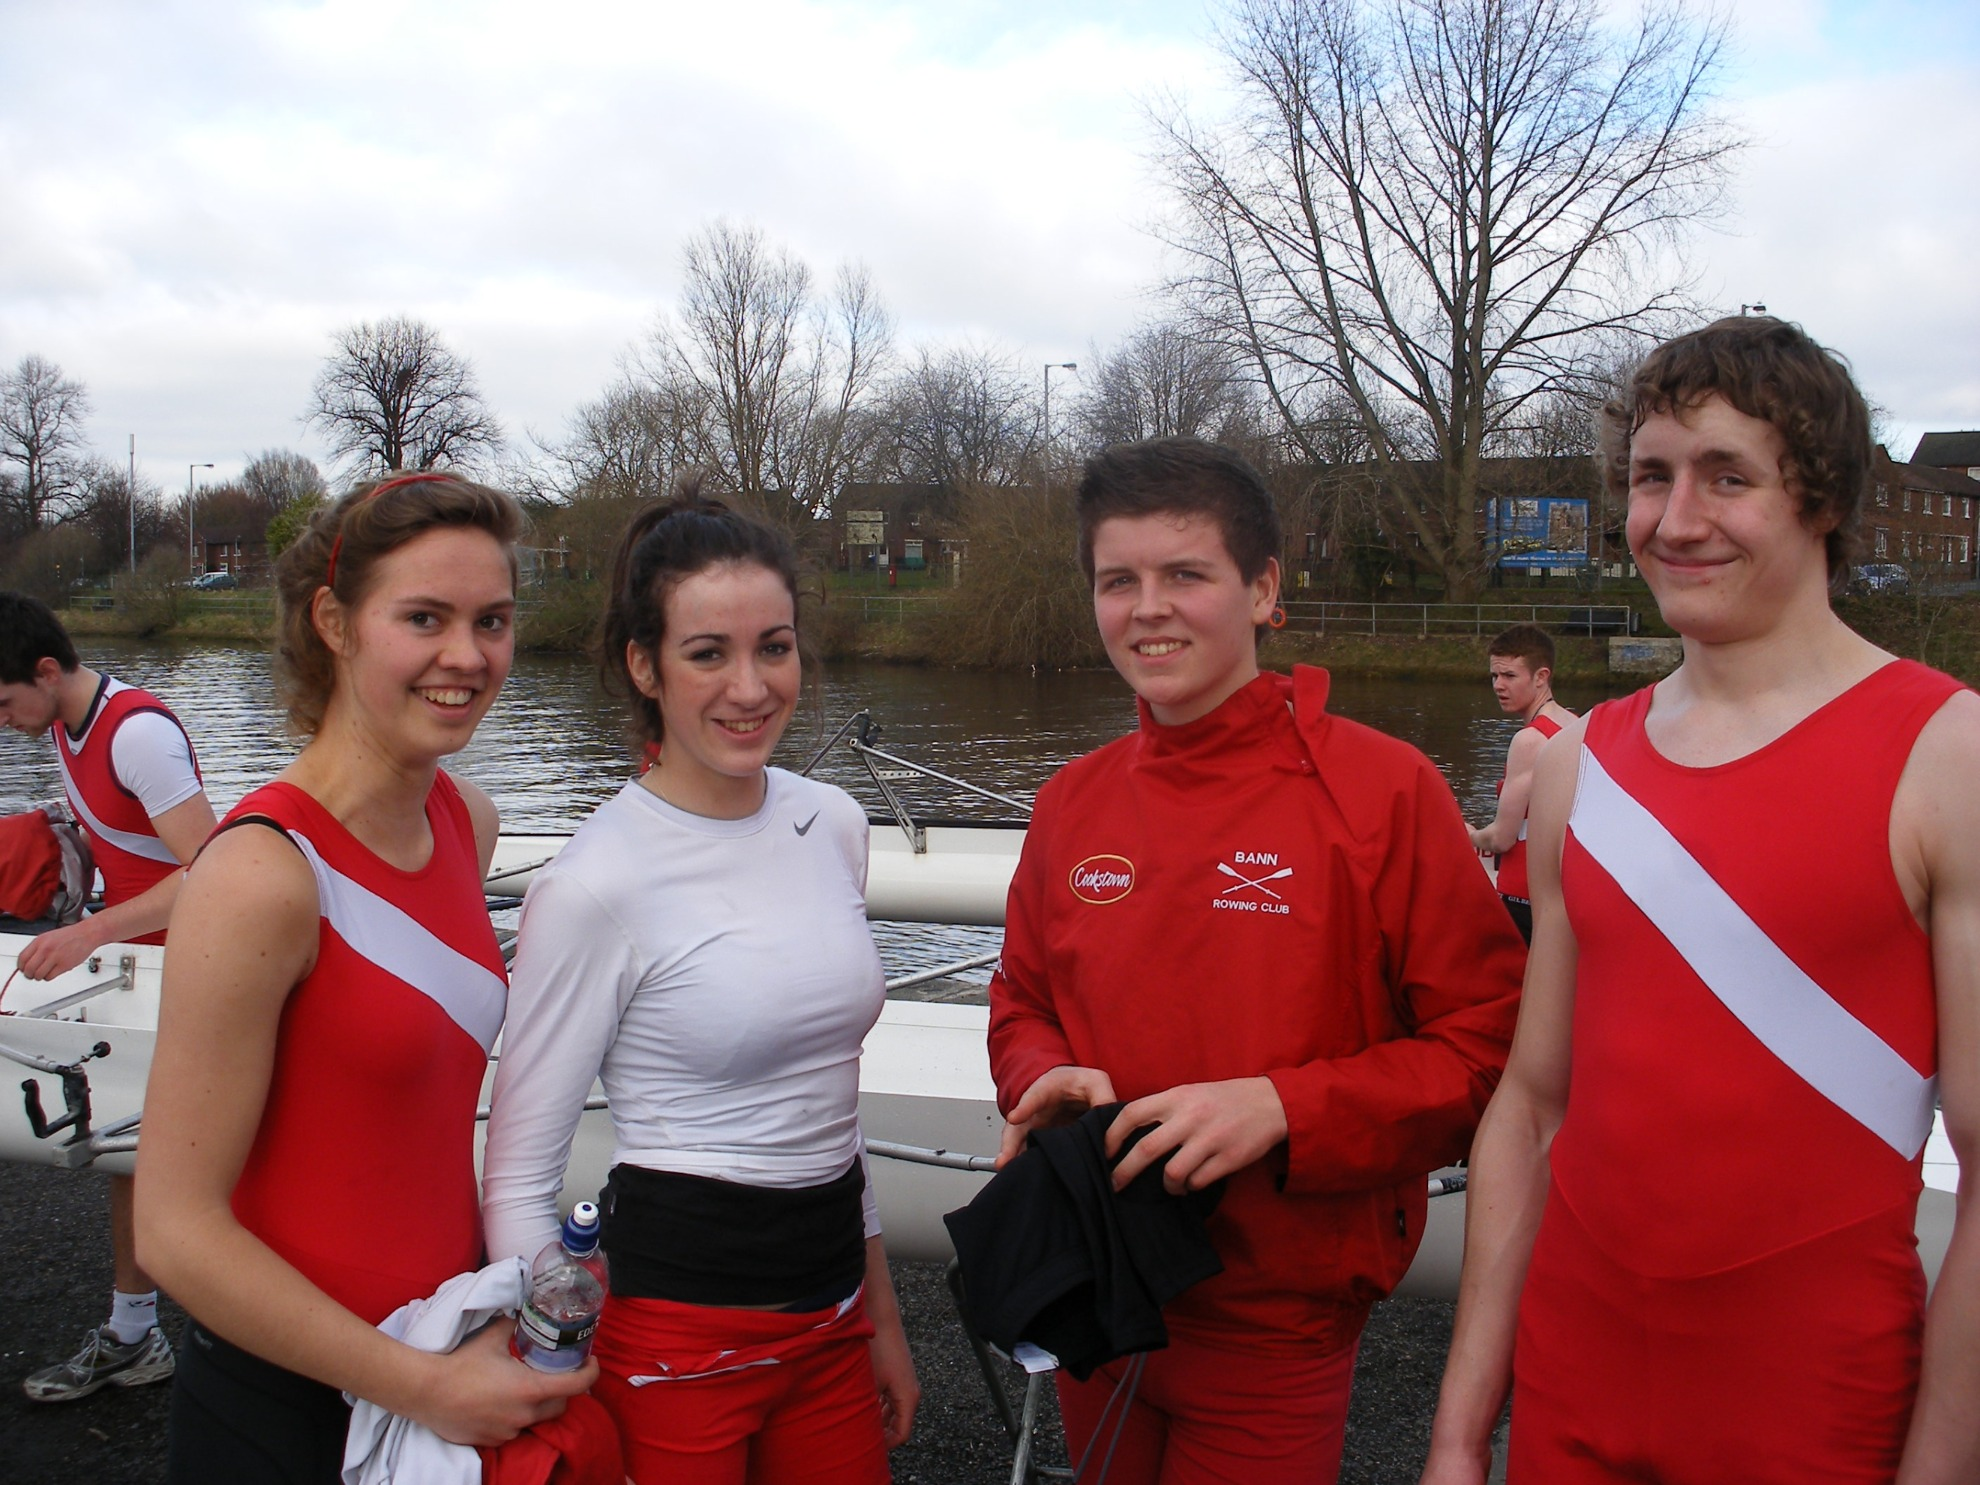 bann-members-at-lagan-scullers-2011